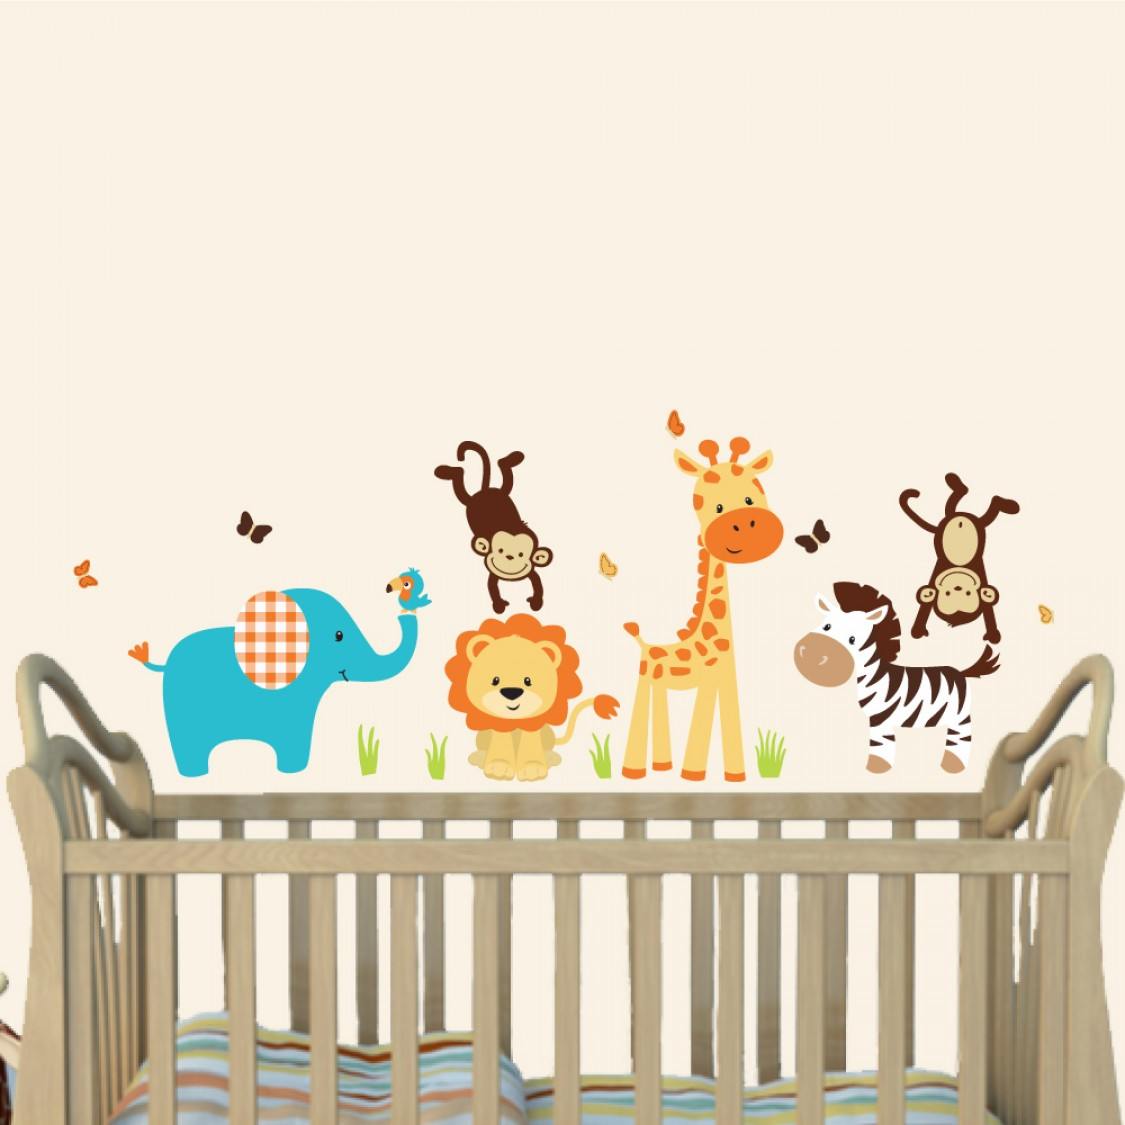 Amazing Gray U0026 Orange Jungle Wall Decals For Nursery With Giraffe Wall Decal For  Nursery Or Baby Part 9